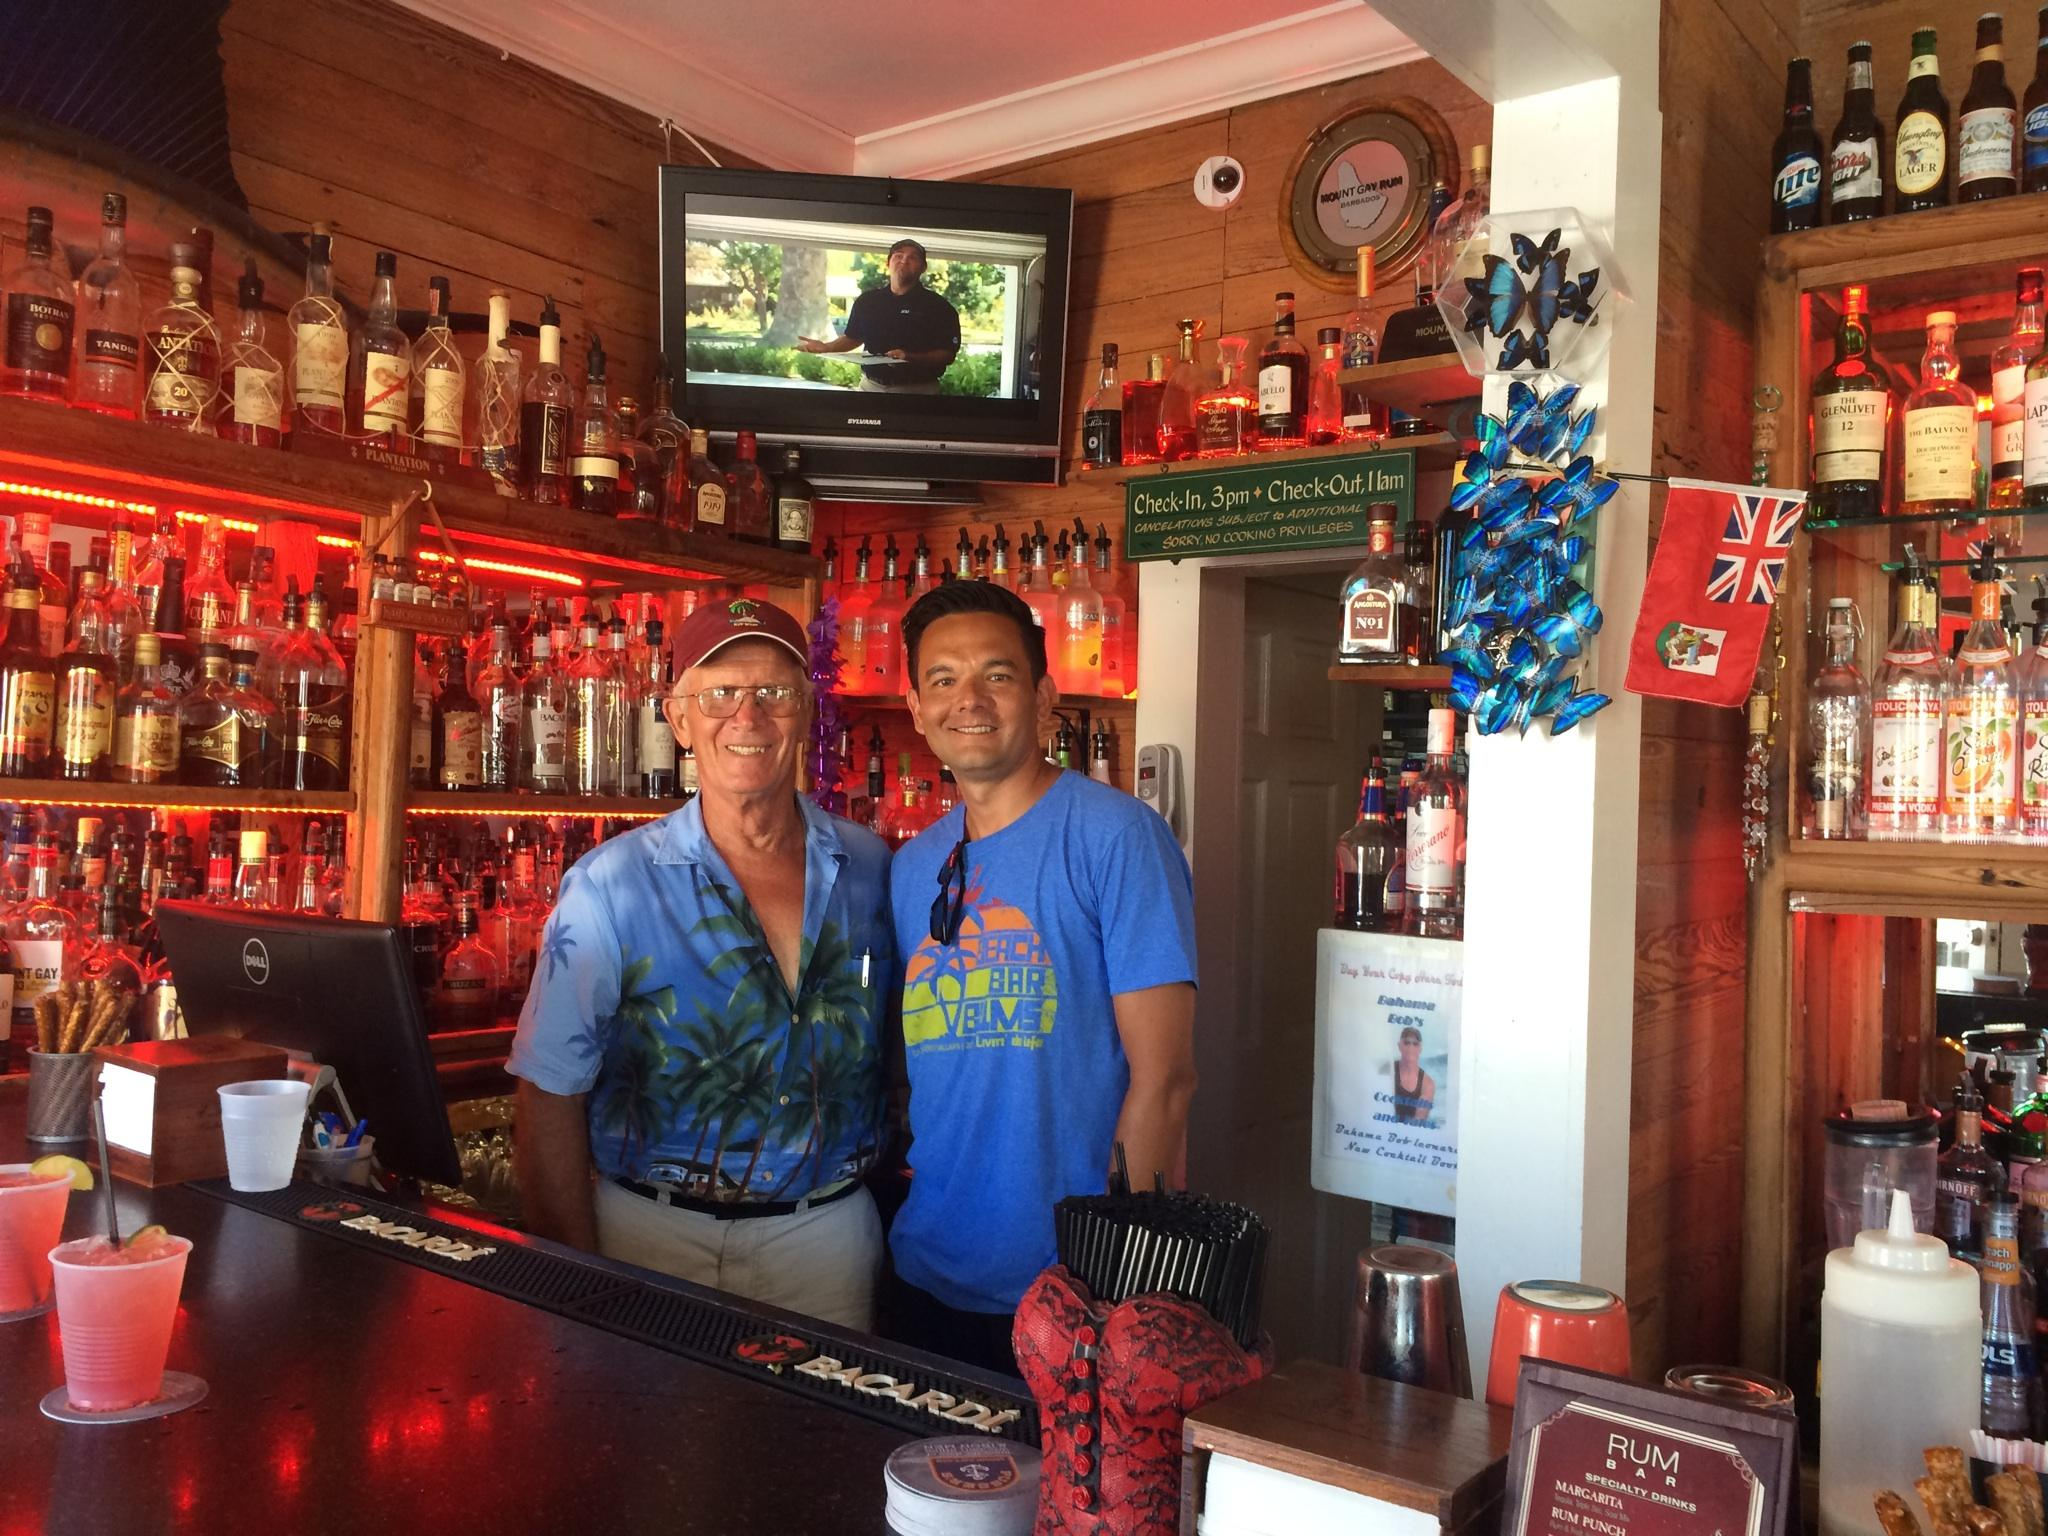 Meeting Bahama Bob Leonard at the Rum Bar at the Speakeasy Inn in Key West, Florida.